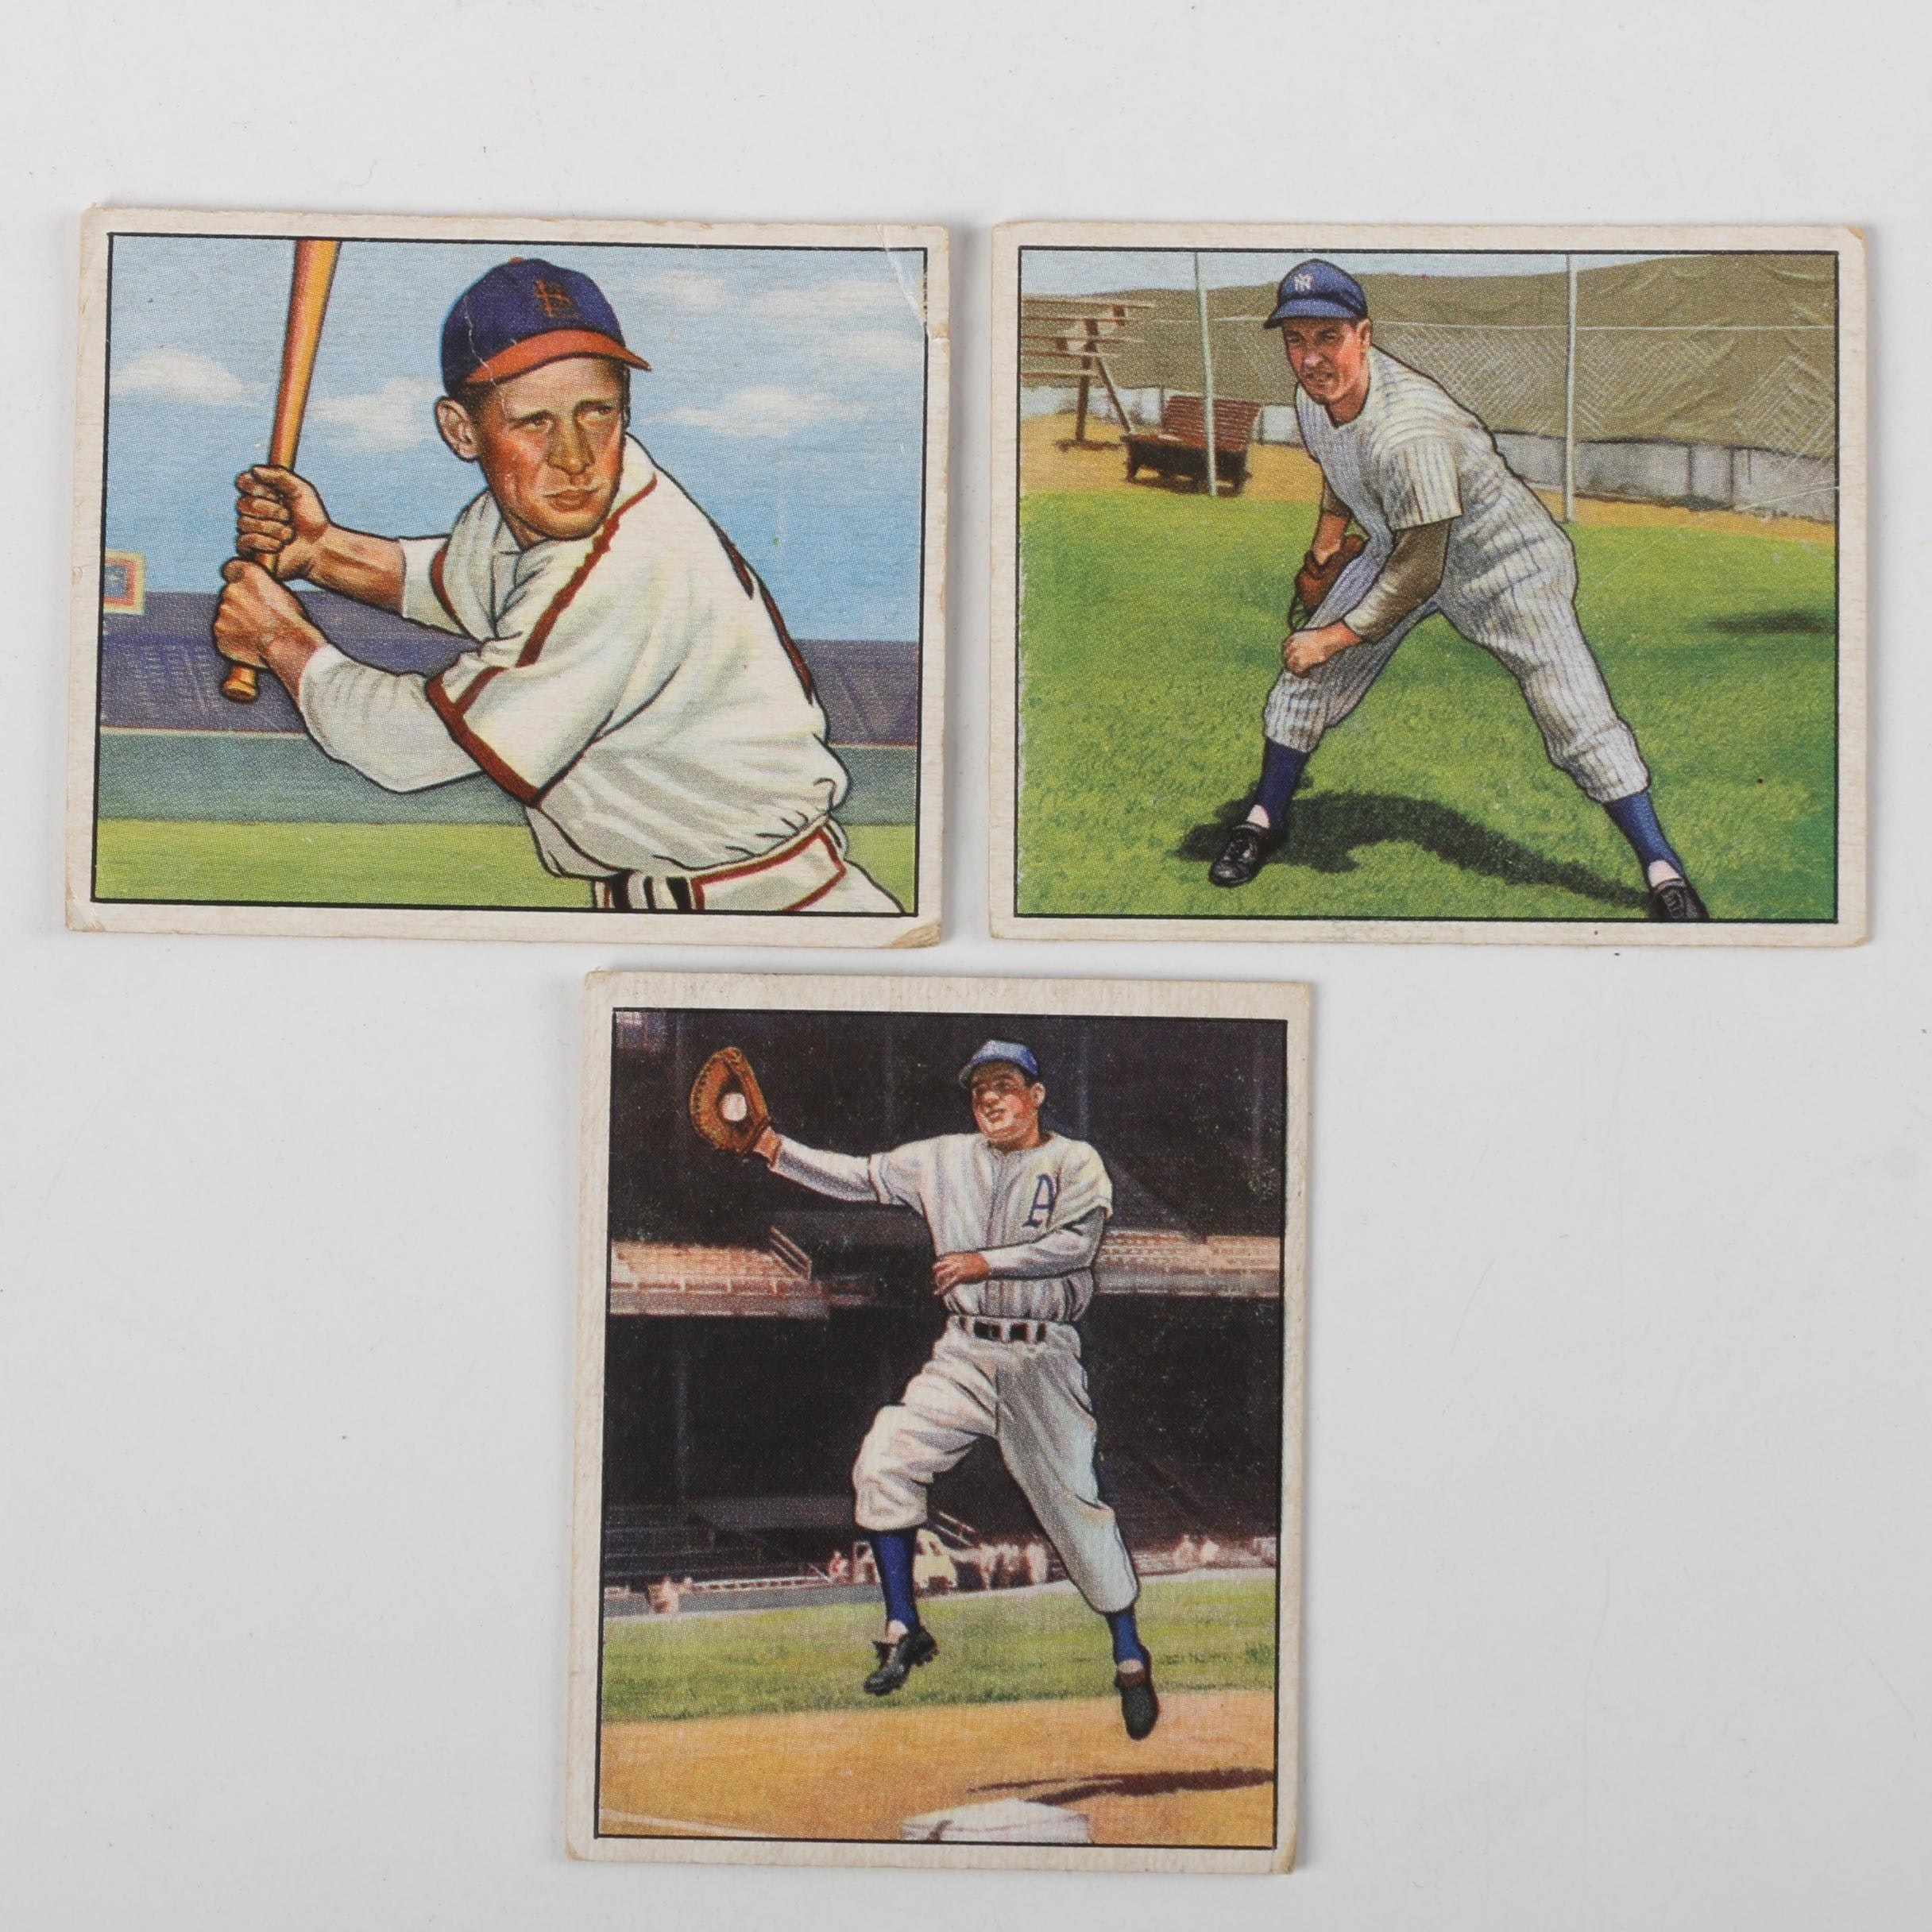 1950 Bowman Baseball Cards